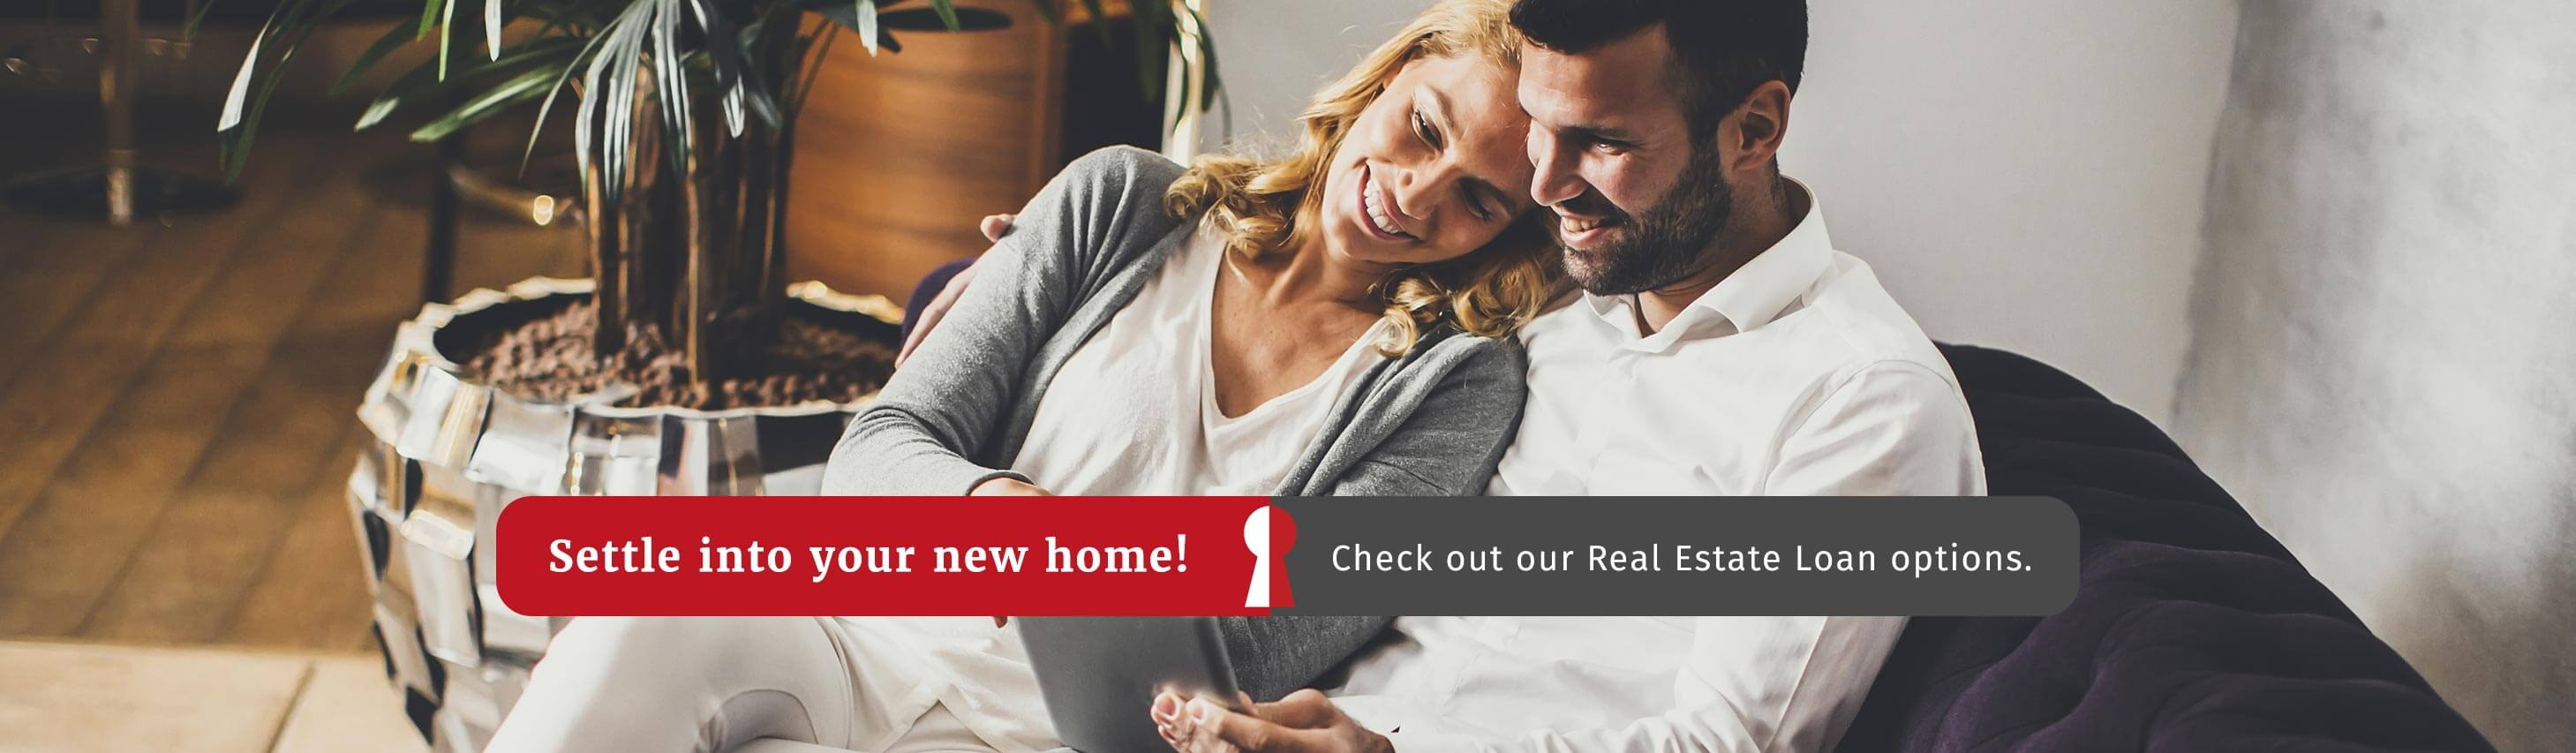 Settle into your new home! Check out our Real Estate Loan options.